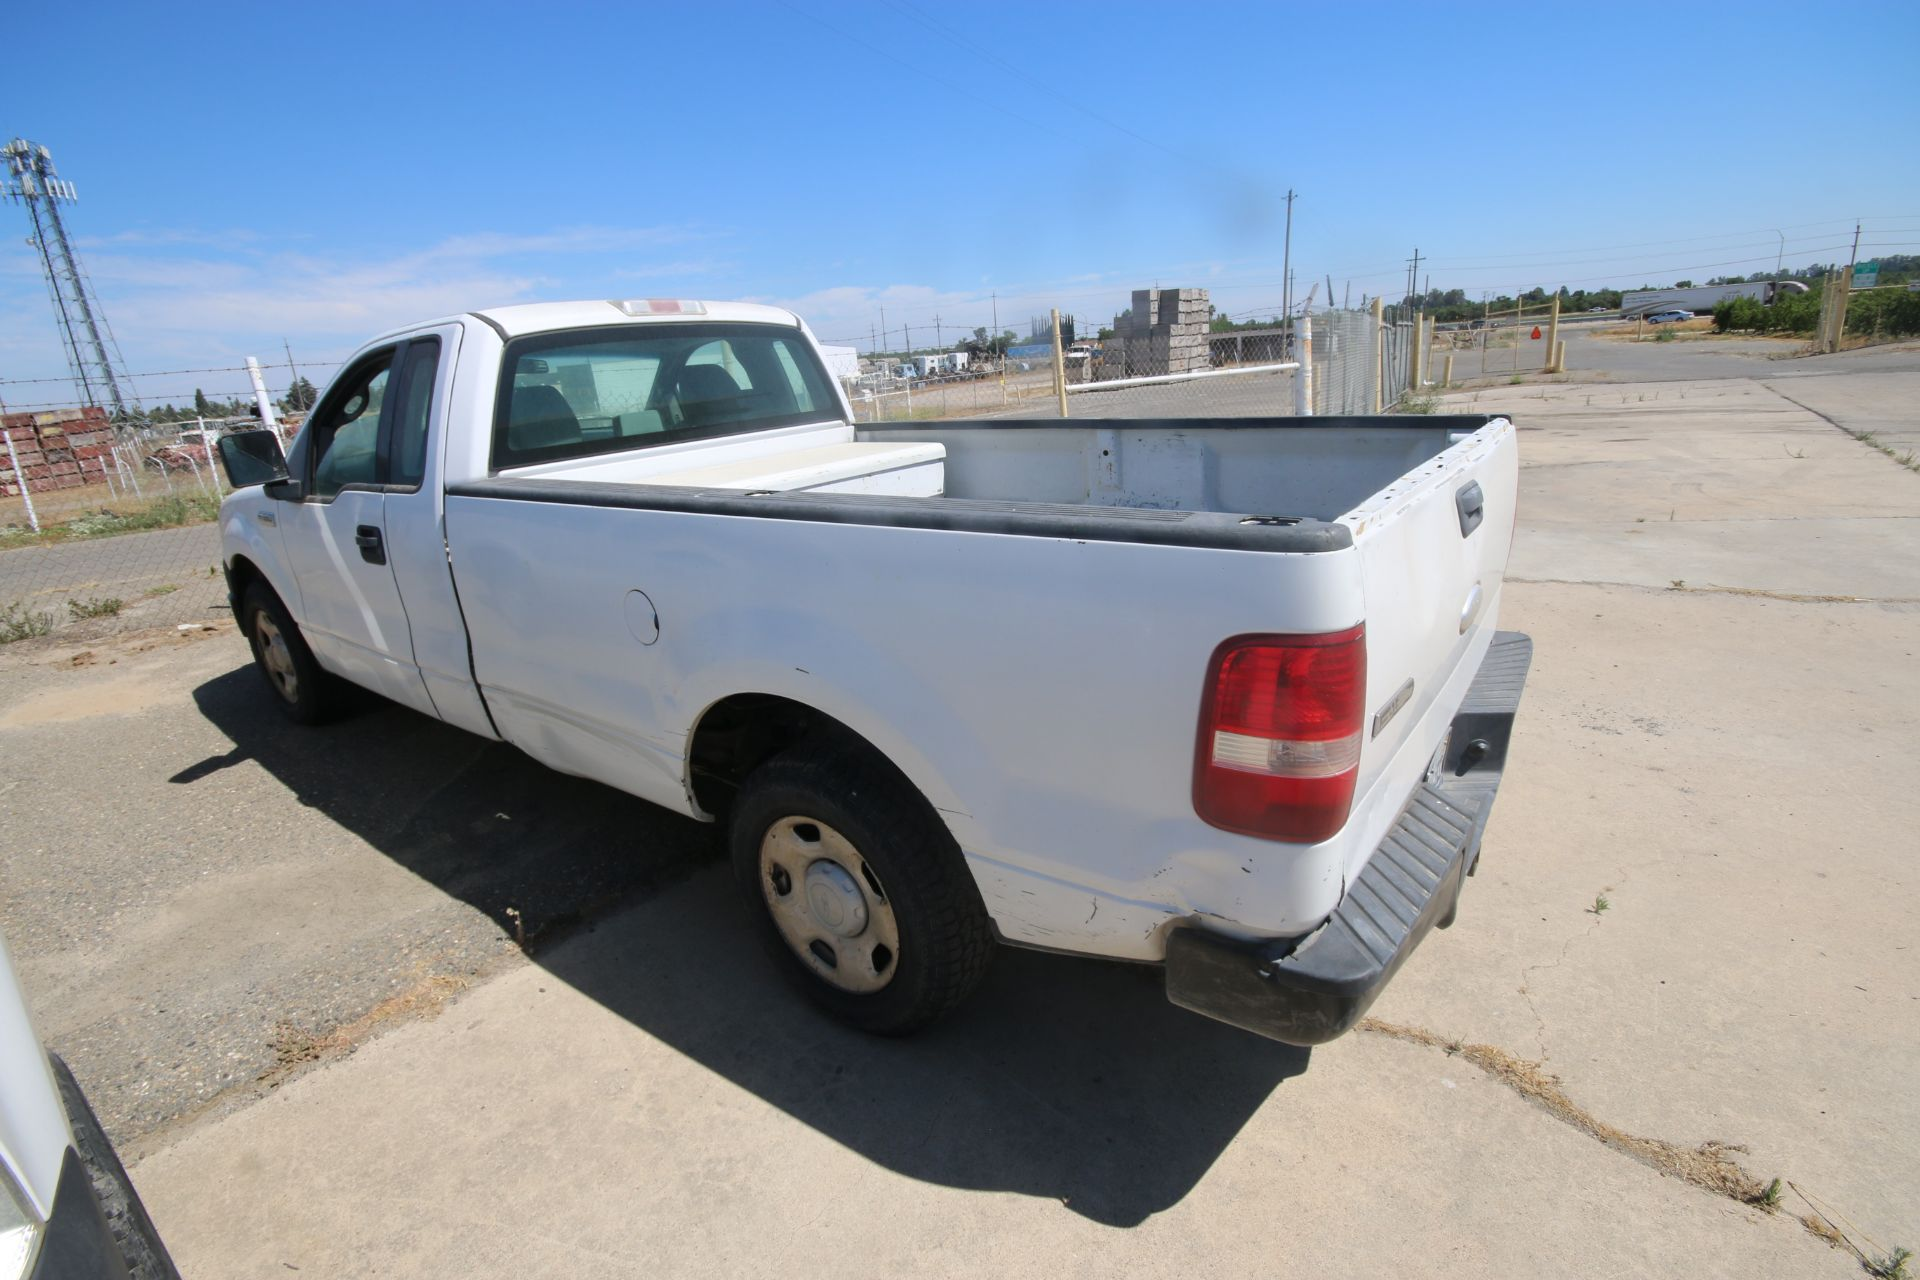 2006 Ford F150 L/B Pick Up Truck, VIN #: 1FTRF12256NA38863, with 167,638 Miles, Started Up as of - Image 10 of 18